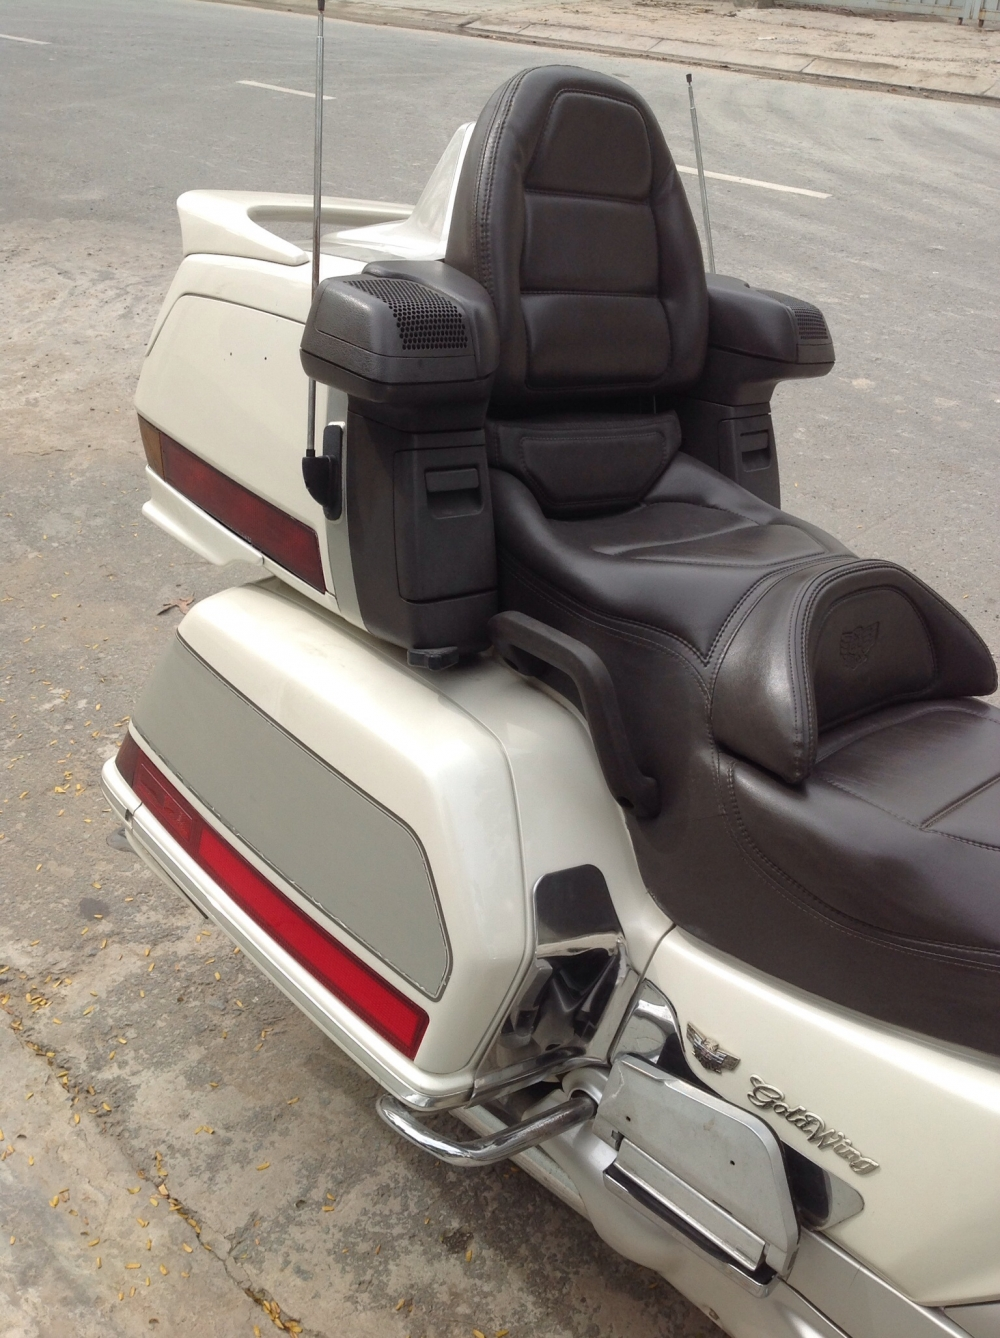 Ban honda goldwing gia tot - 10